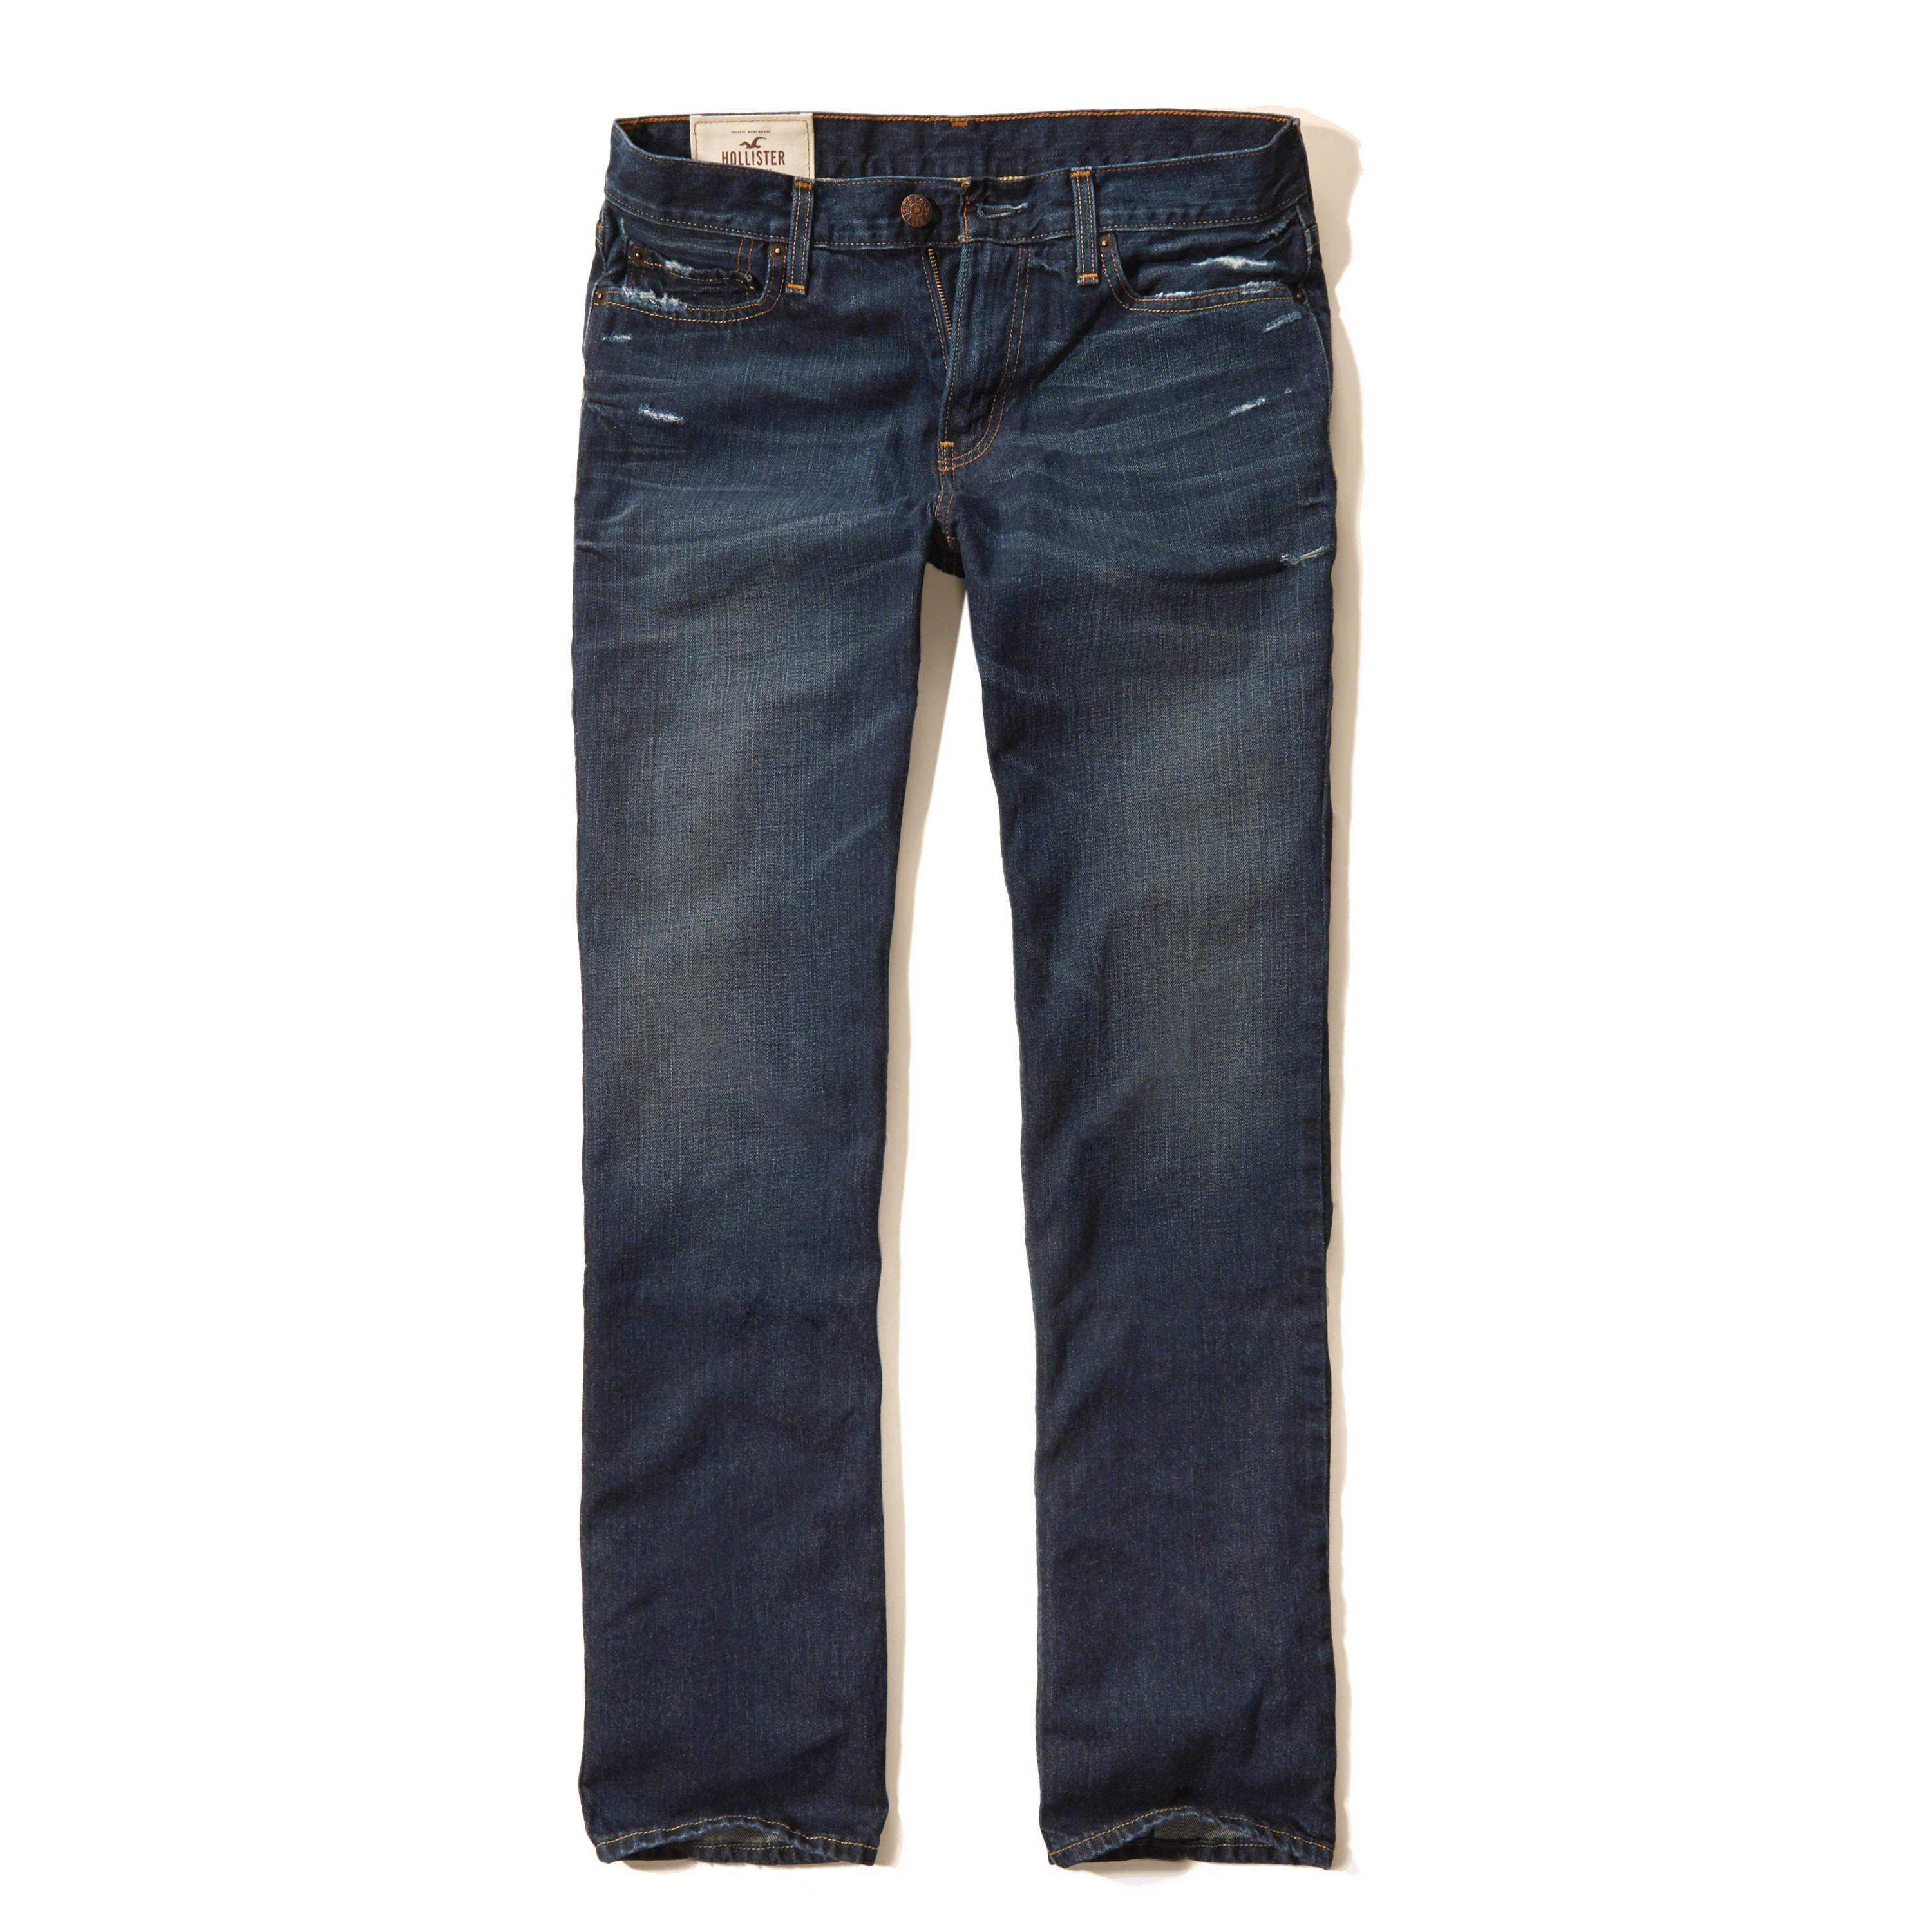 hollister dark jeans for men - photo #19